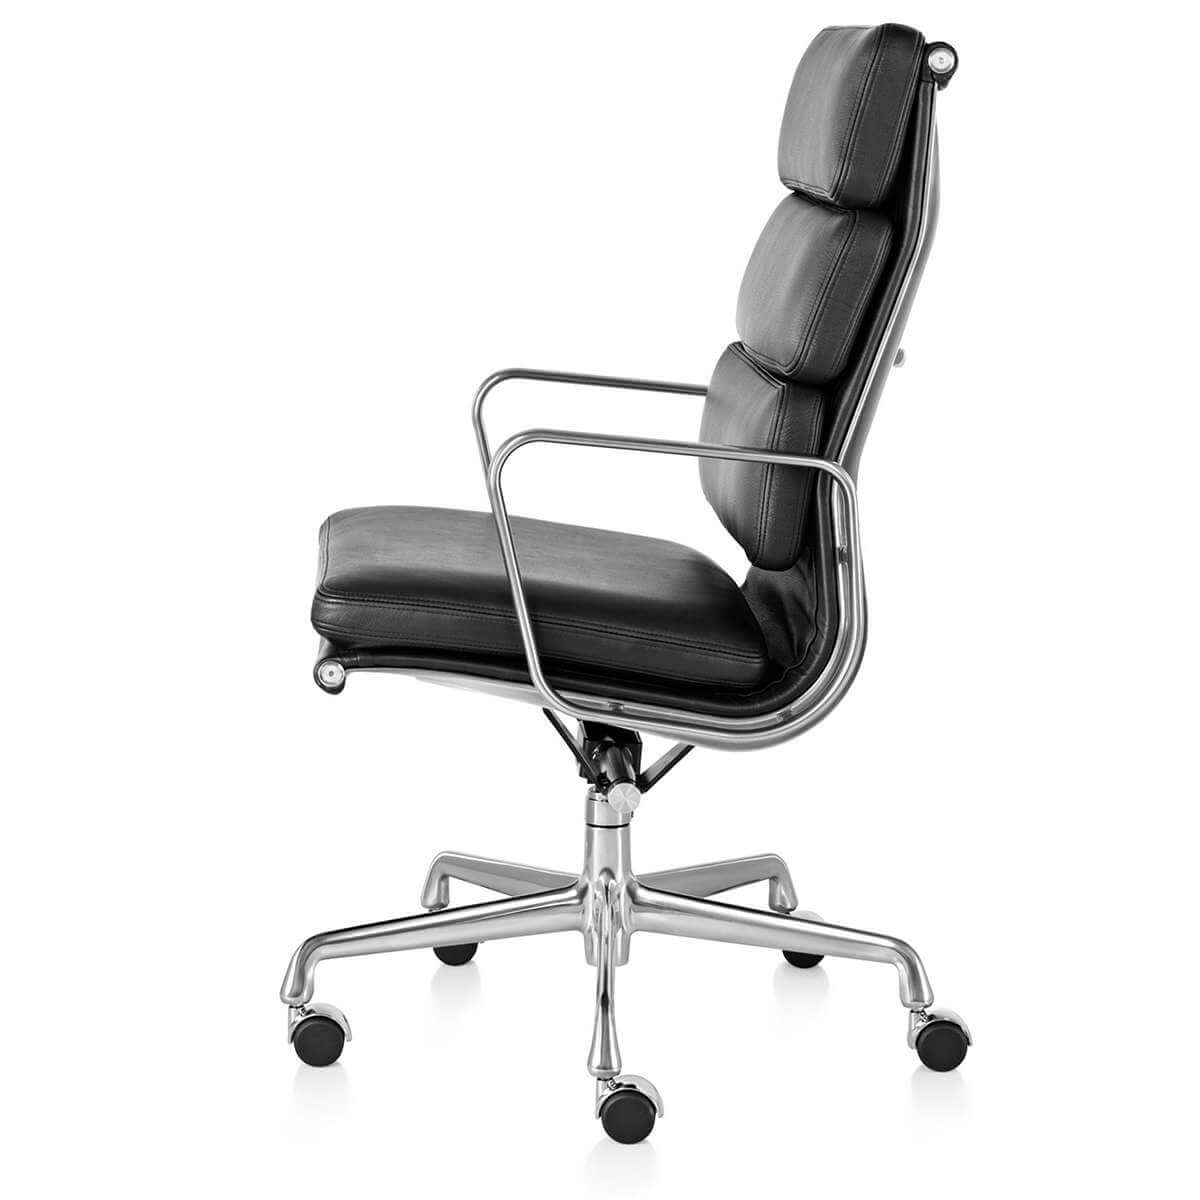 Ergonomic Office Chair - Eames 3